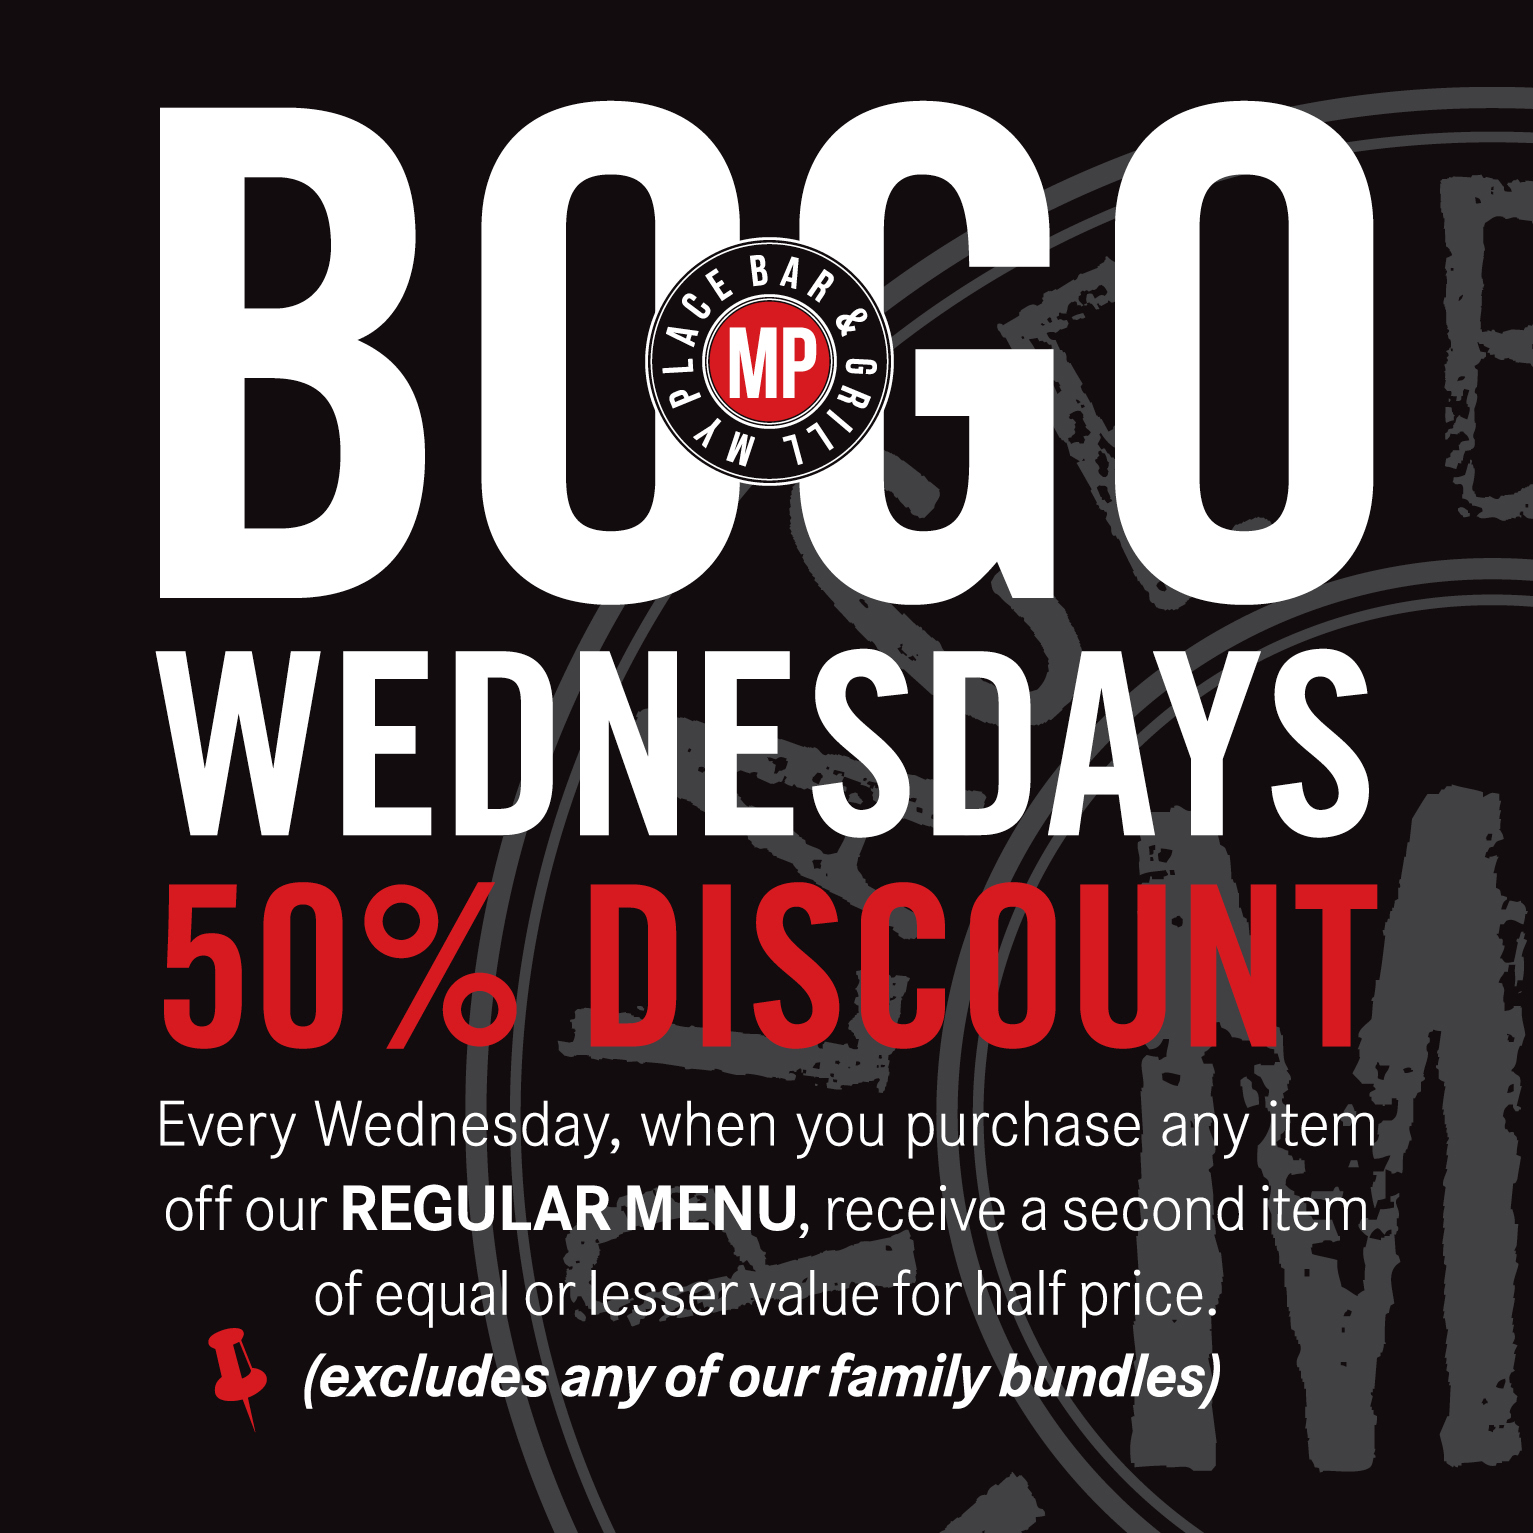 BOGO Wednesdays at My Place Bar & Grill